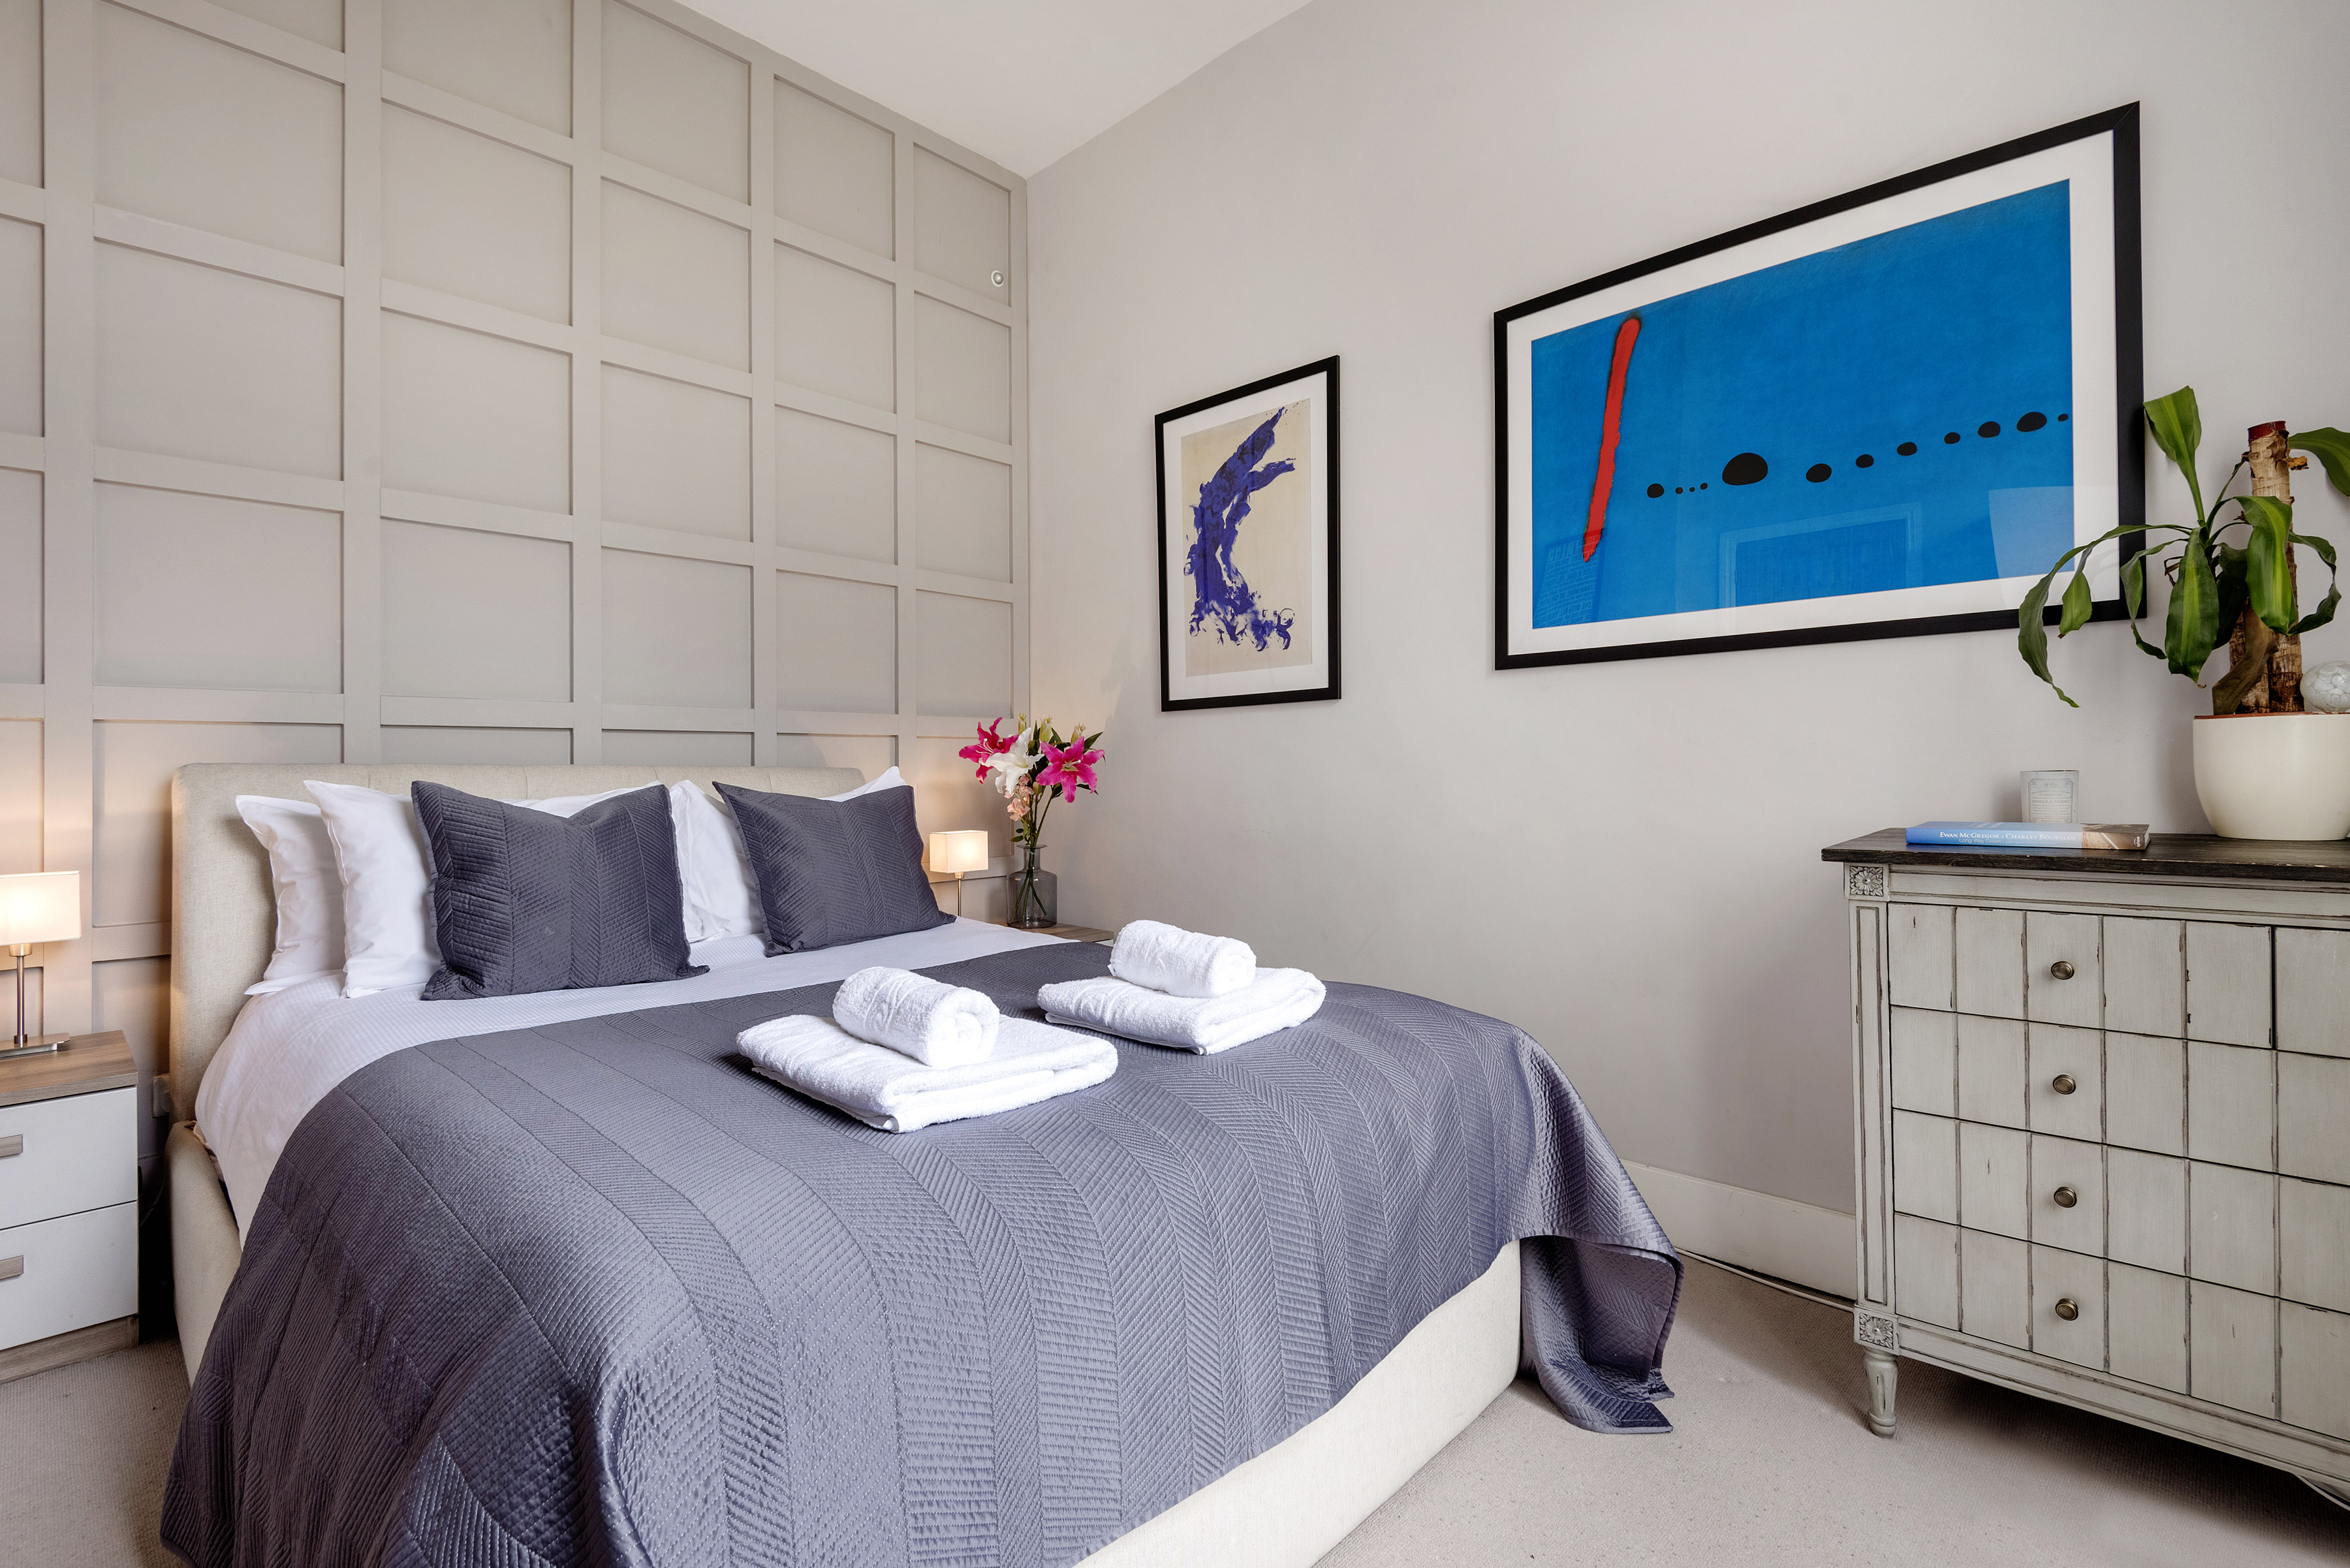 Property Image 2 - Contemporary Clapham home near Wandsworth Common